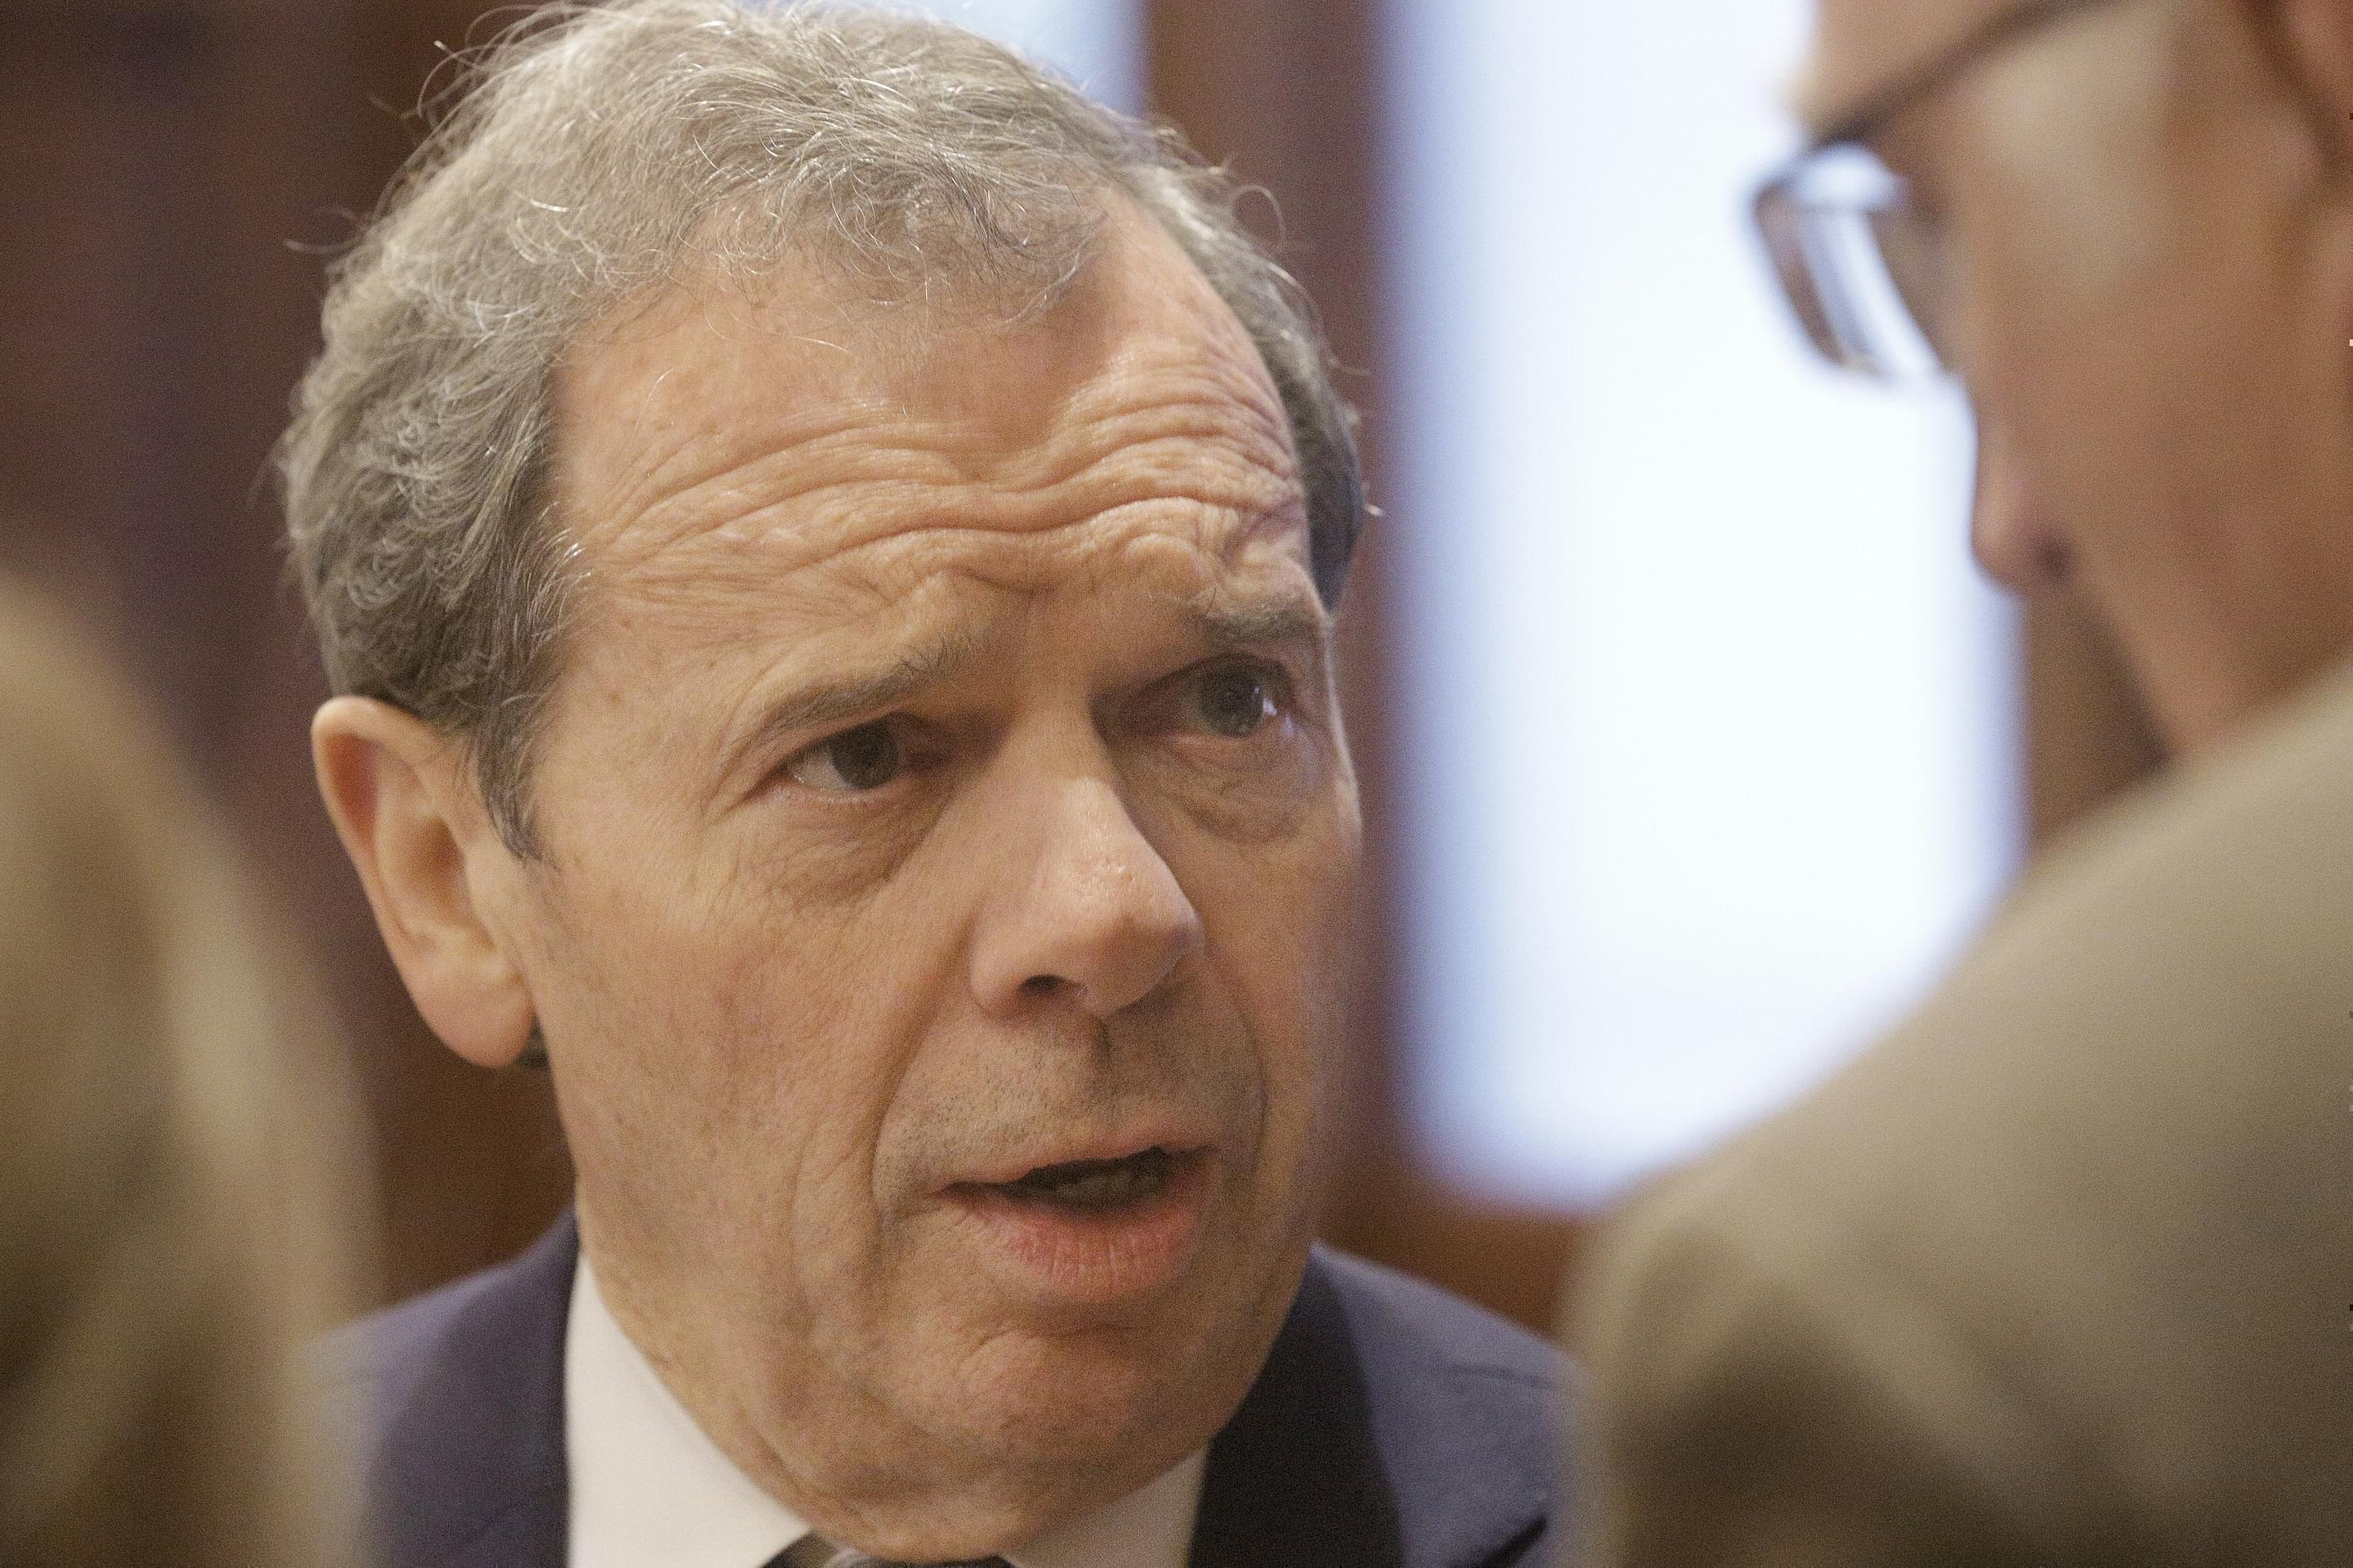 Illinois Senate President John Cullerton, D-Chicago, speaks to reporters while on the Senate floor during session at the Illinois State Capitol Monday, Dec. 7, 2015, in Springfield